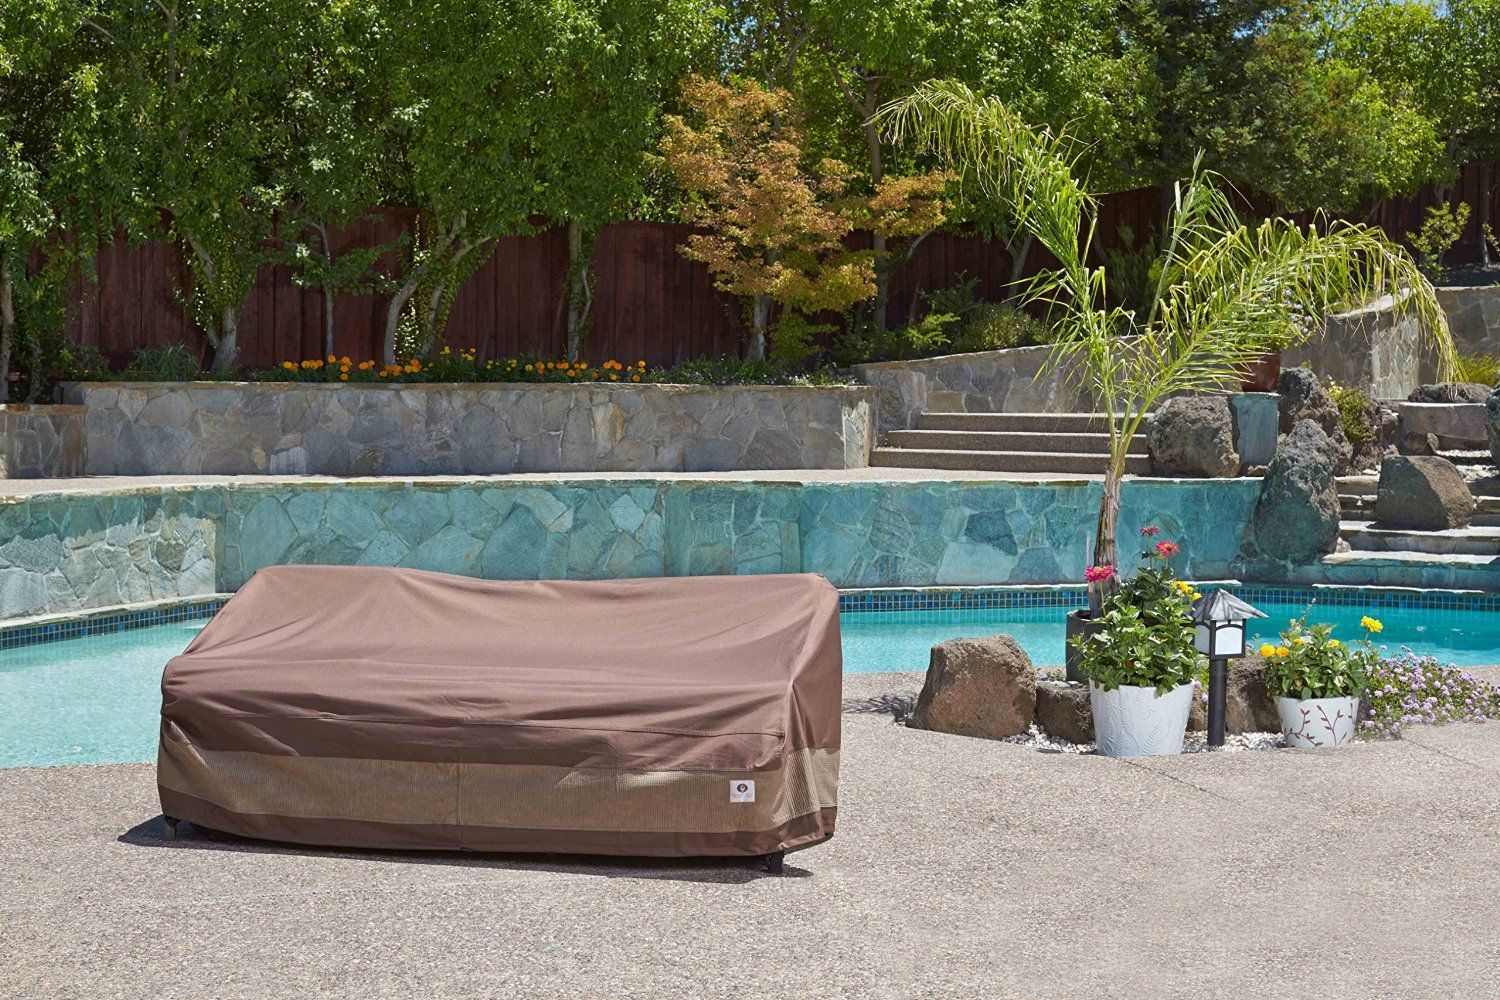 cover outdoor furniture. Outdoor Furniture Covers For Furniture\u0027s Protection - Review Cover